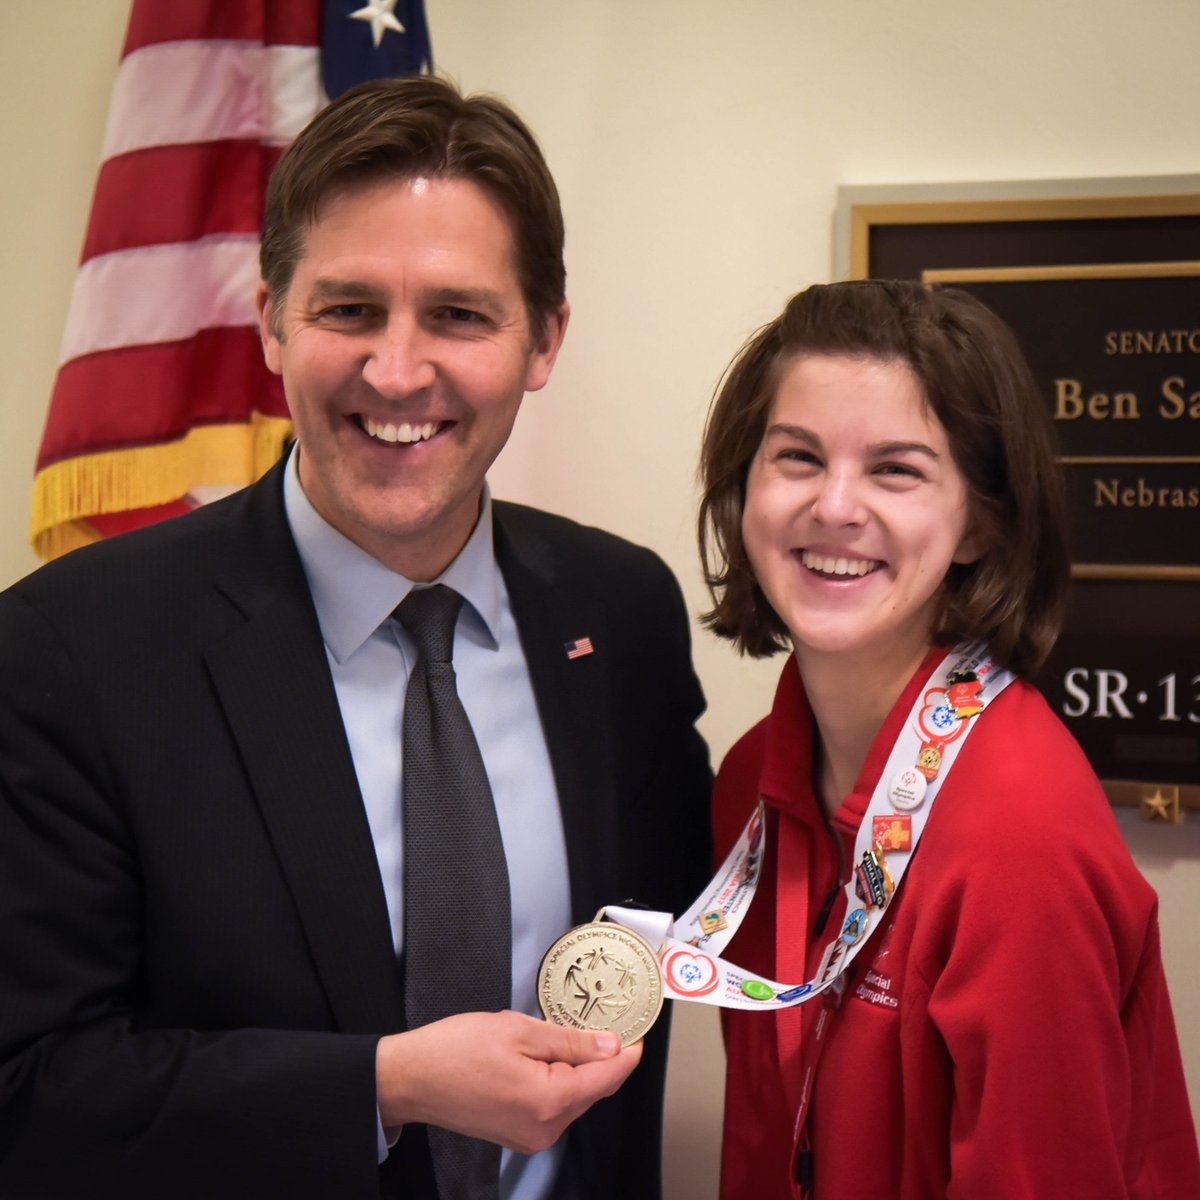 Sports don't just build character; they reveal it. Kudos to Rachel Mulligan, whose cross country skiing earned medals in the 500m freestyle race & 1km freestyle race in the @SpecialOlympics Winter World Games in Austria. Thanks for making Nebraska proud! @SONebraska #SOHillDay https://t.co/cyVdmnRyp2